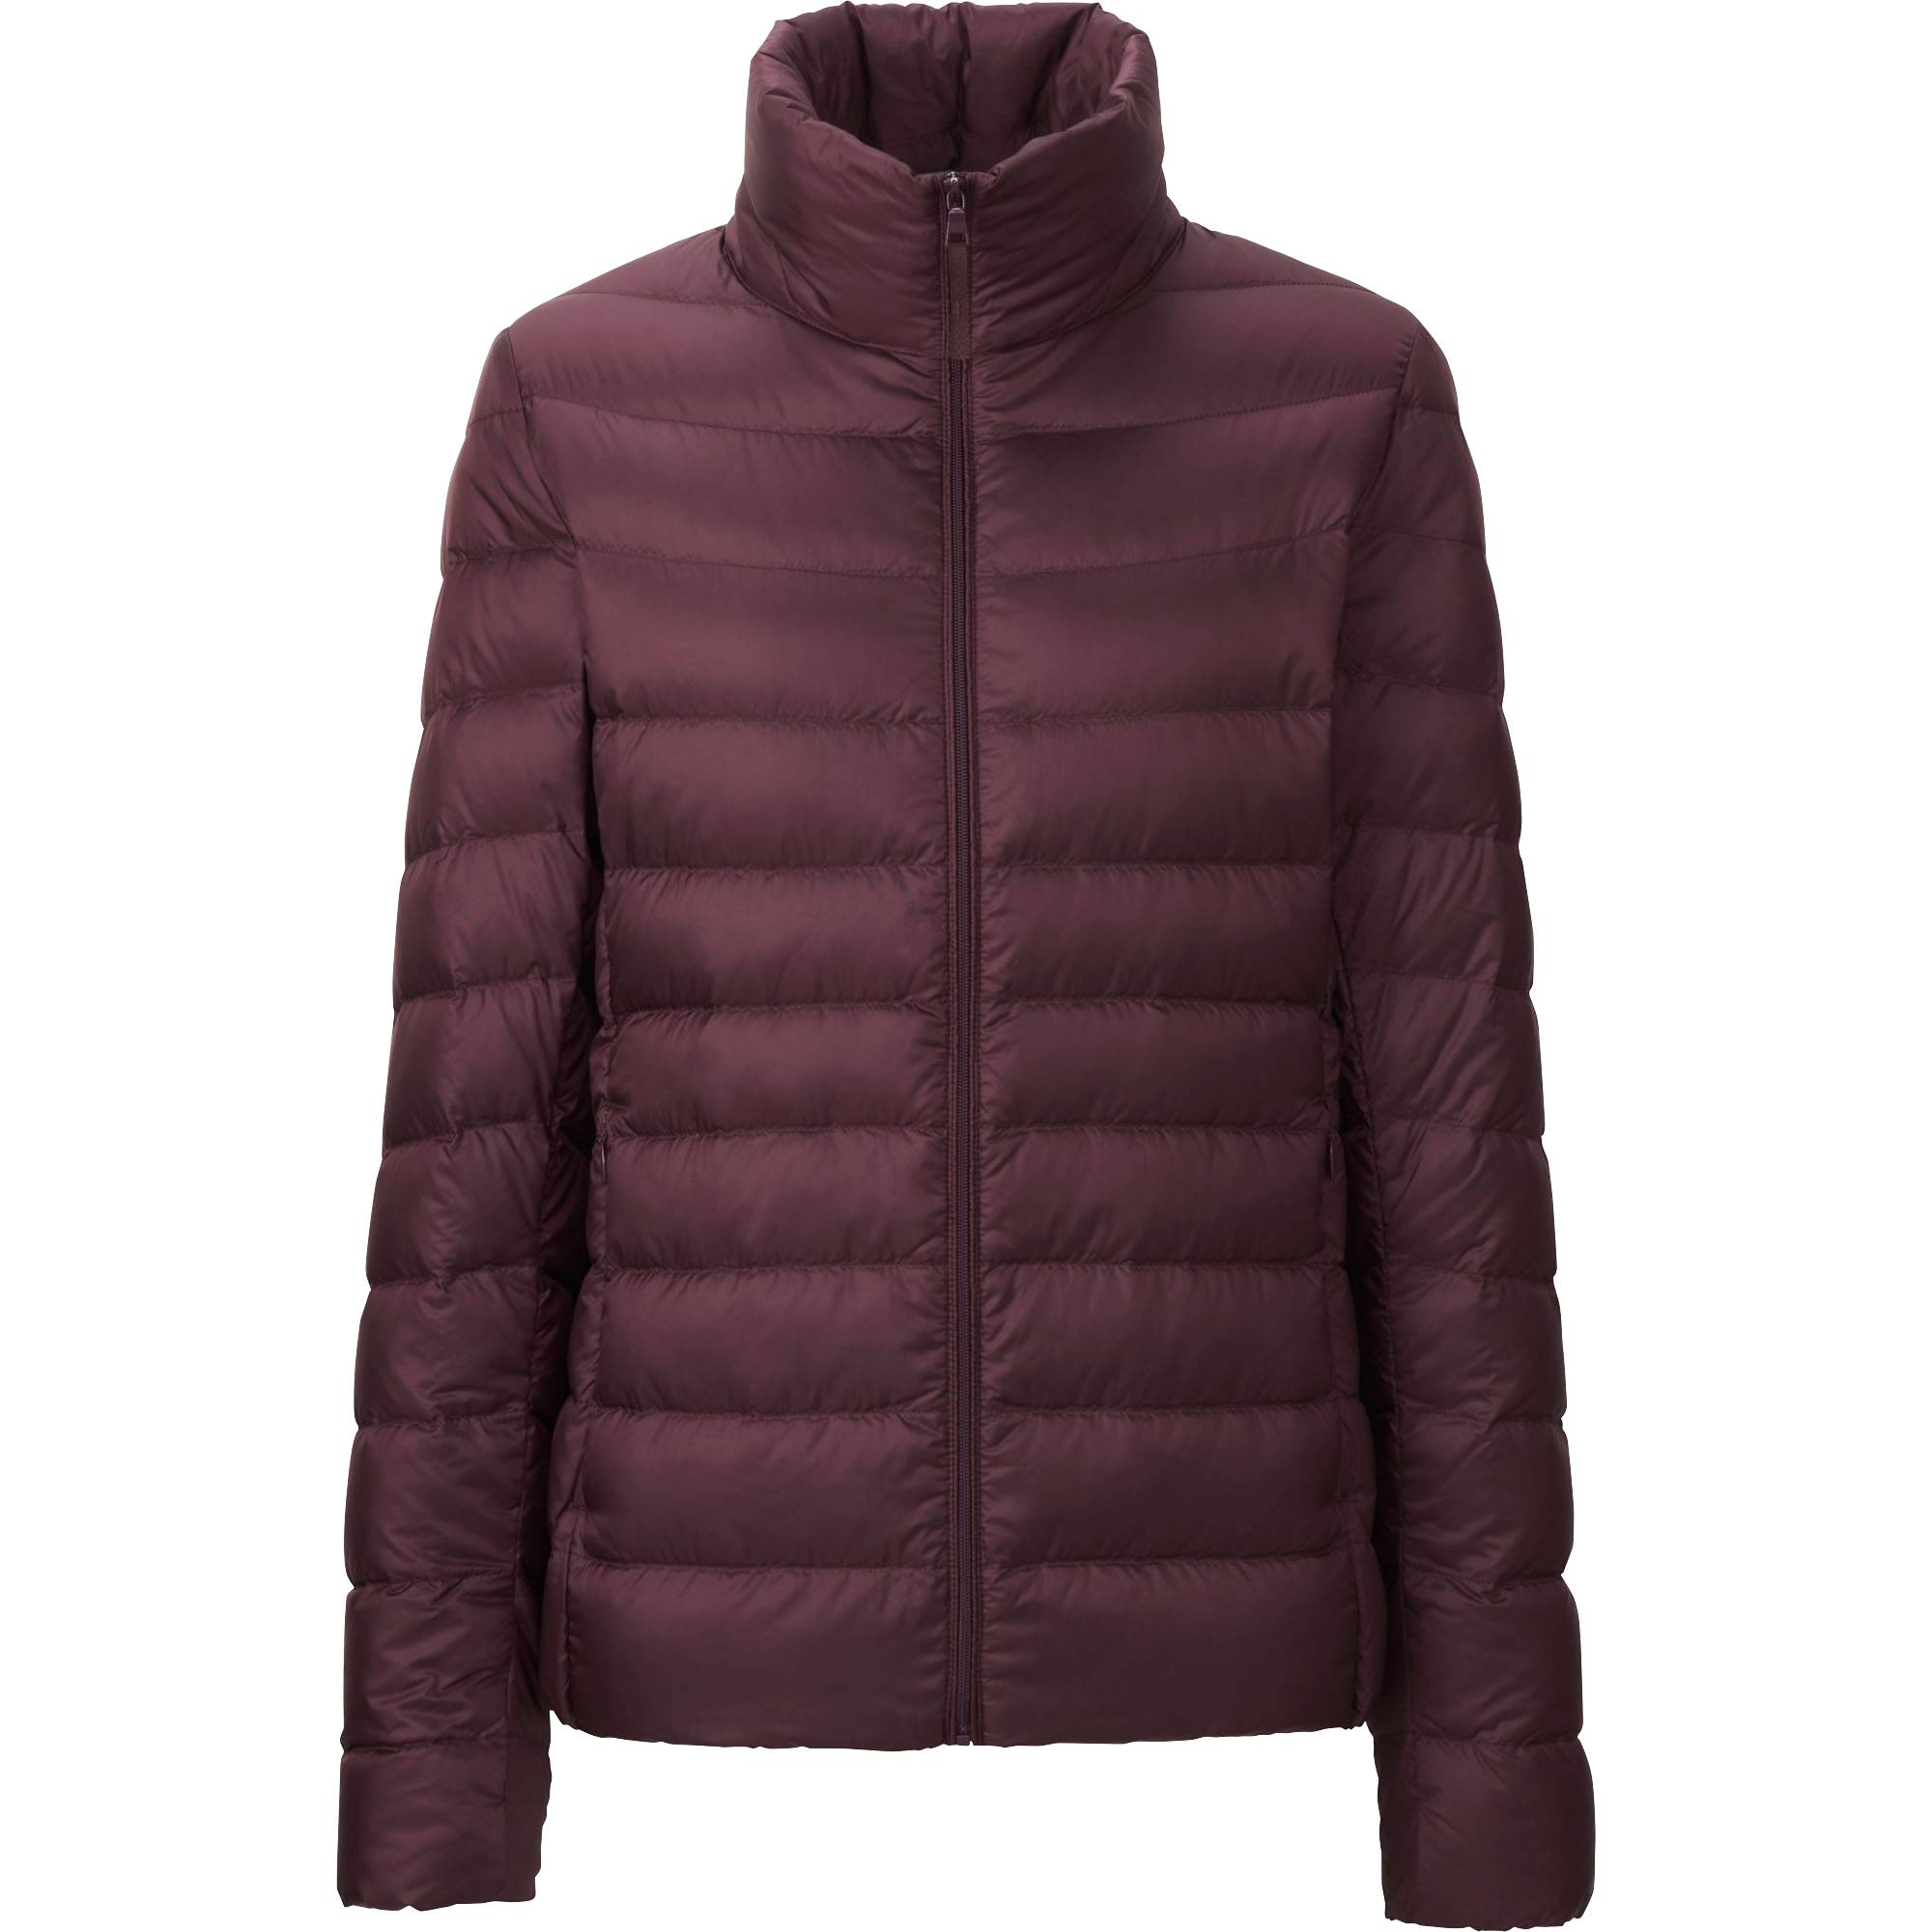 Uniqlo Packable Ultra Light Down Jacket